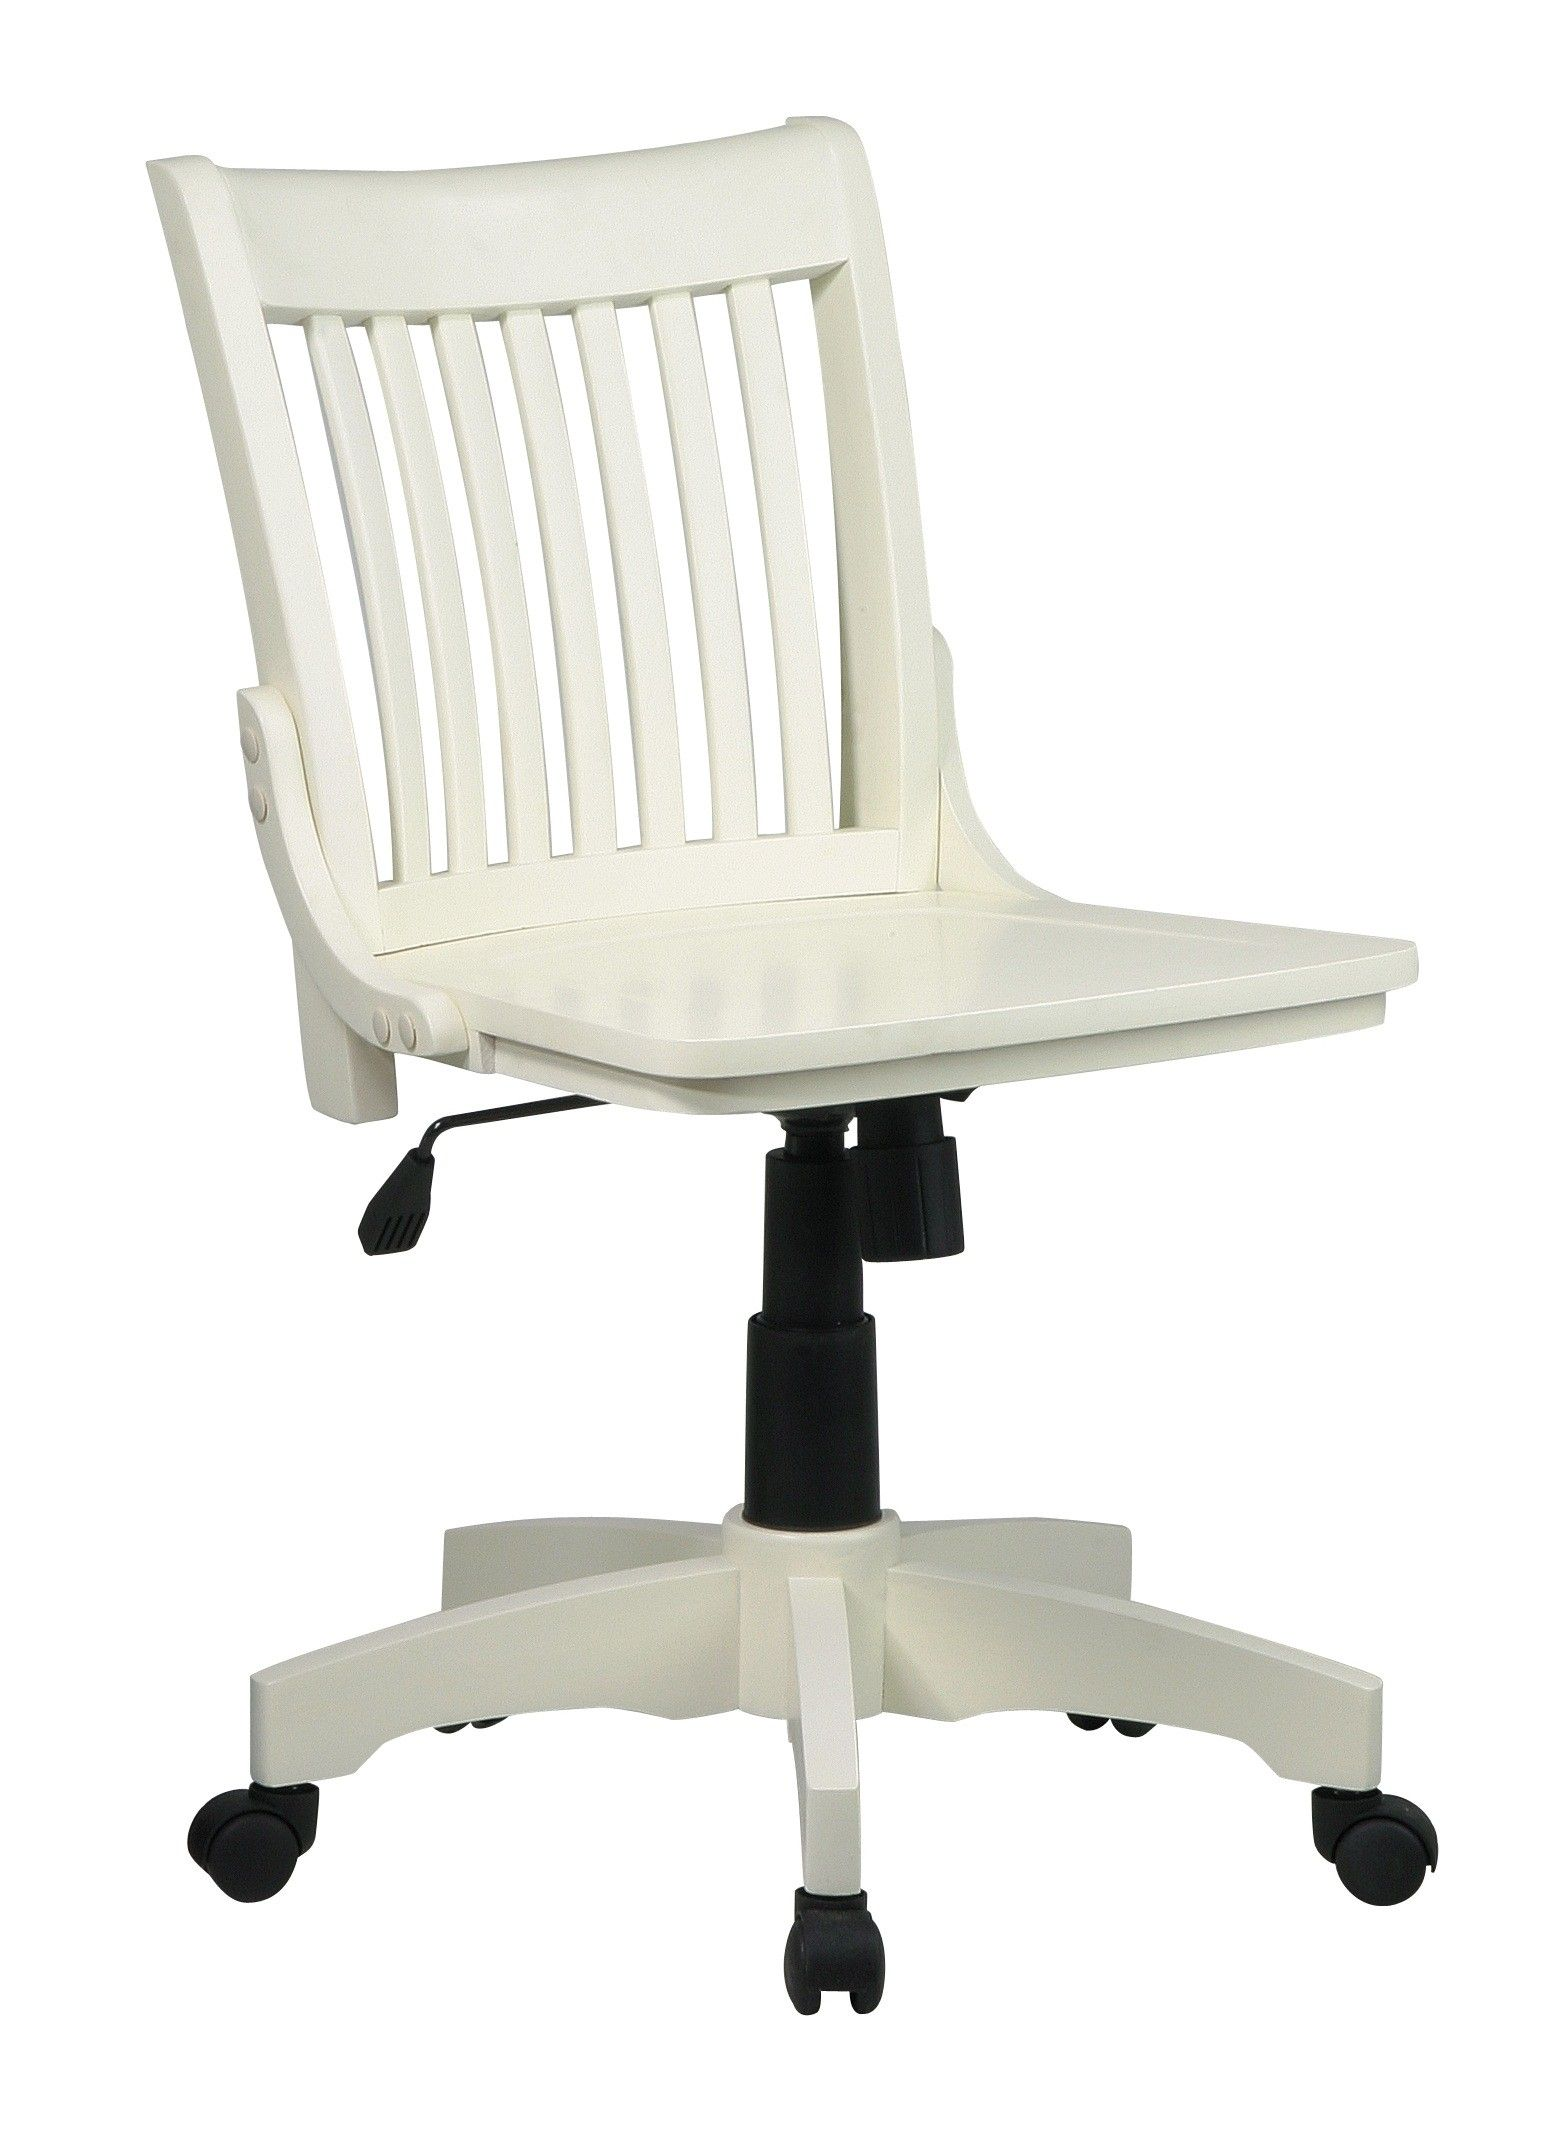 Designs White Swivel Desk Chair Rattan Chairg Wingate From Pottery Barn Home Decor Stuhle Stuhl Weiss Holz Coole Burostuhle